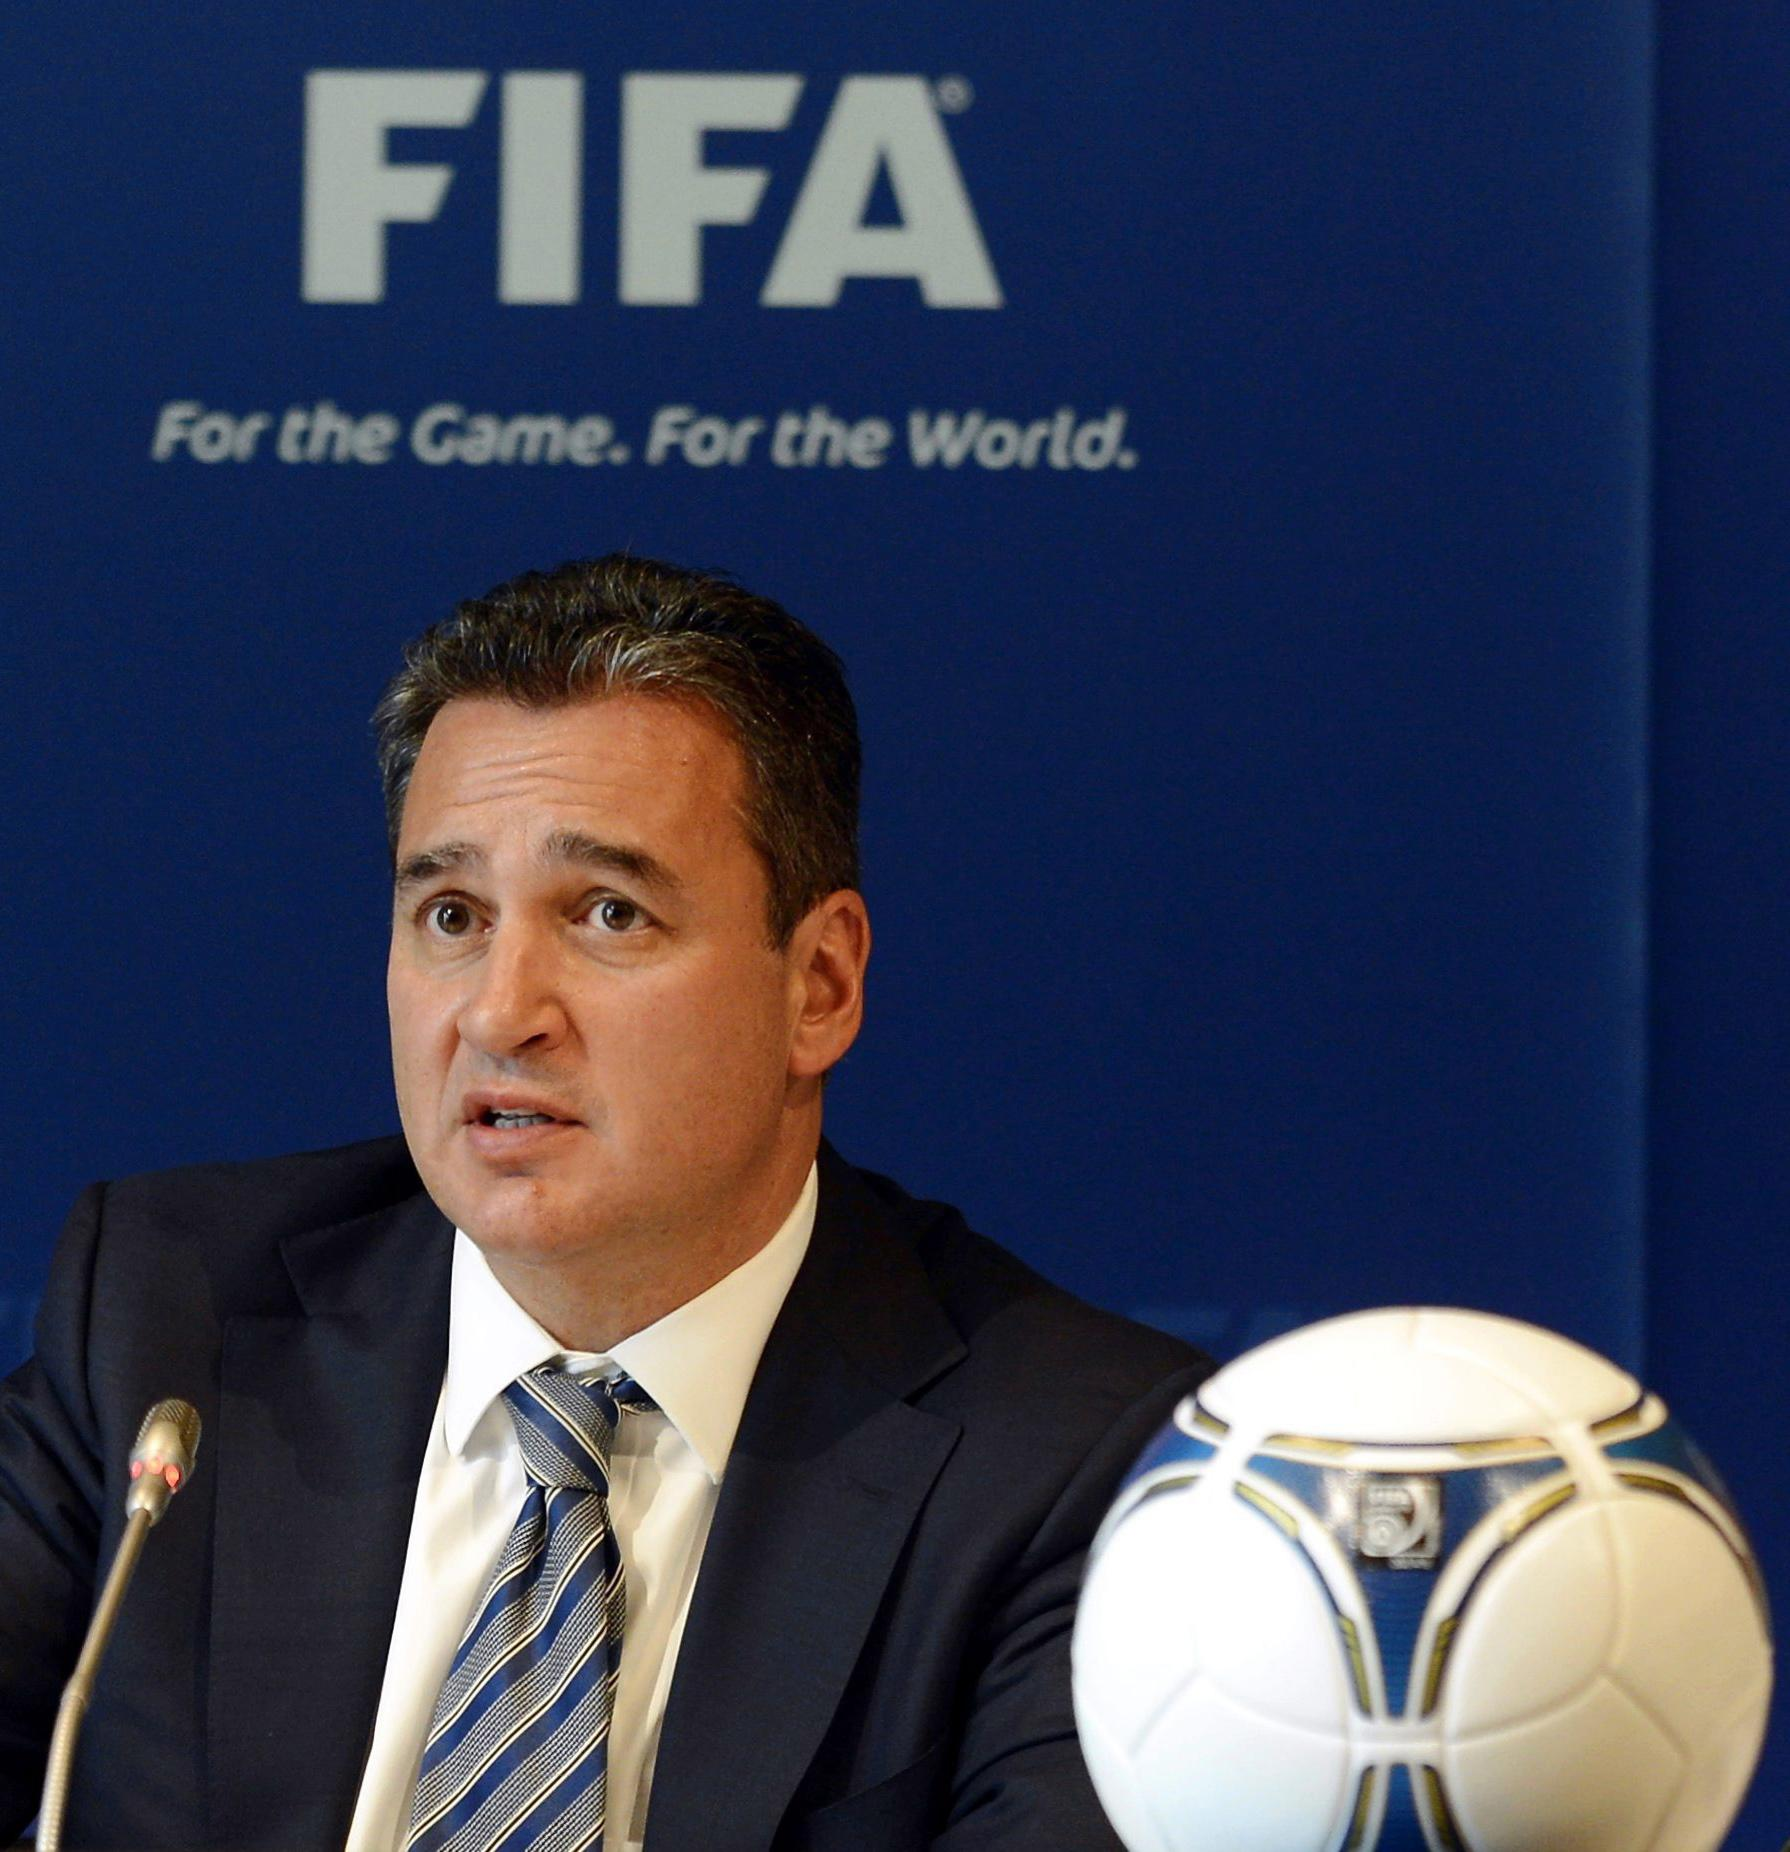 FIFA meets amid crisis over Garcia's resignation